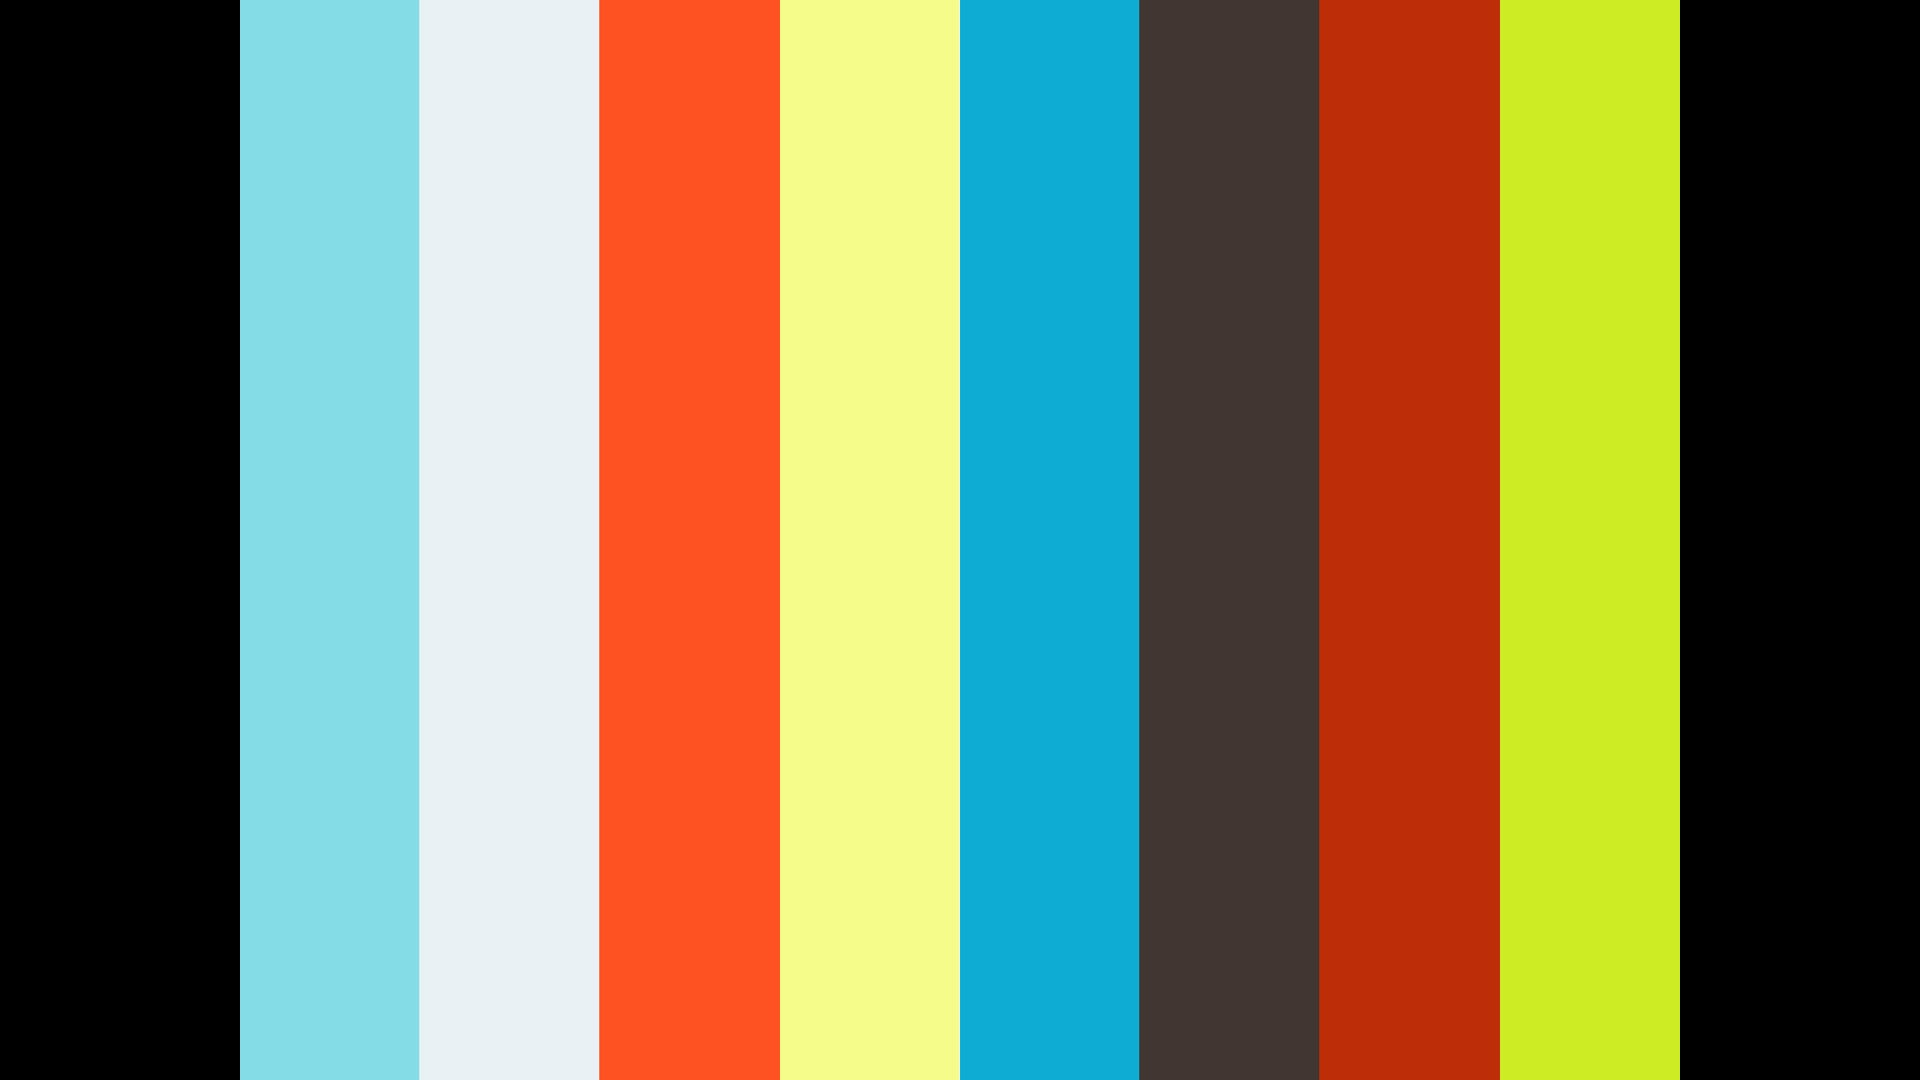 Kaiser Permanente Riverside Service Awards 2015 - Behind the Scenes